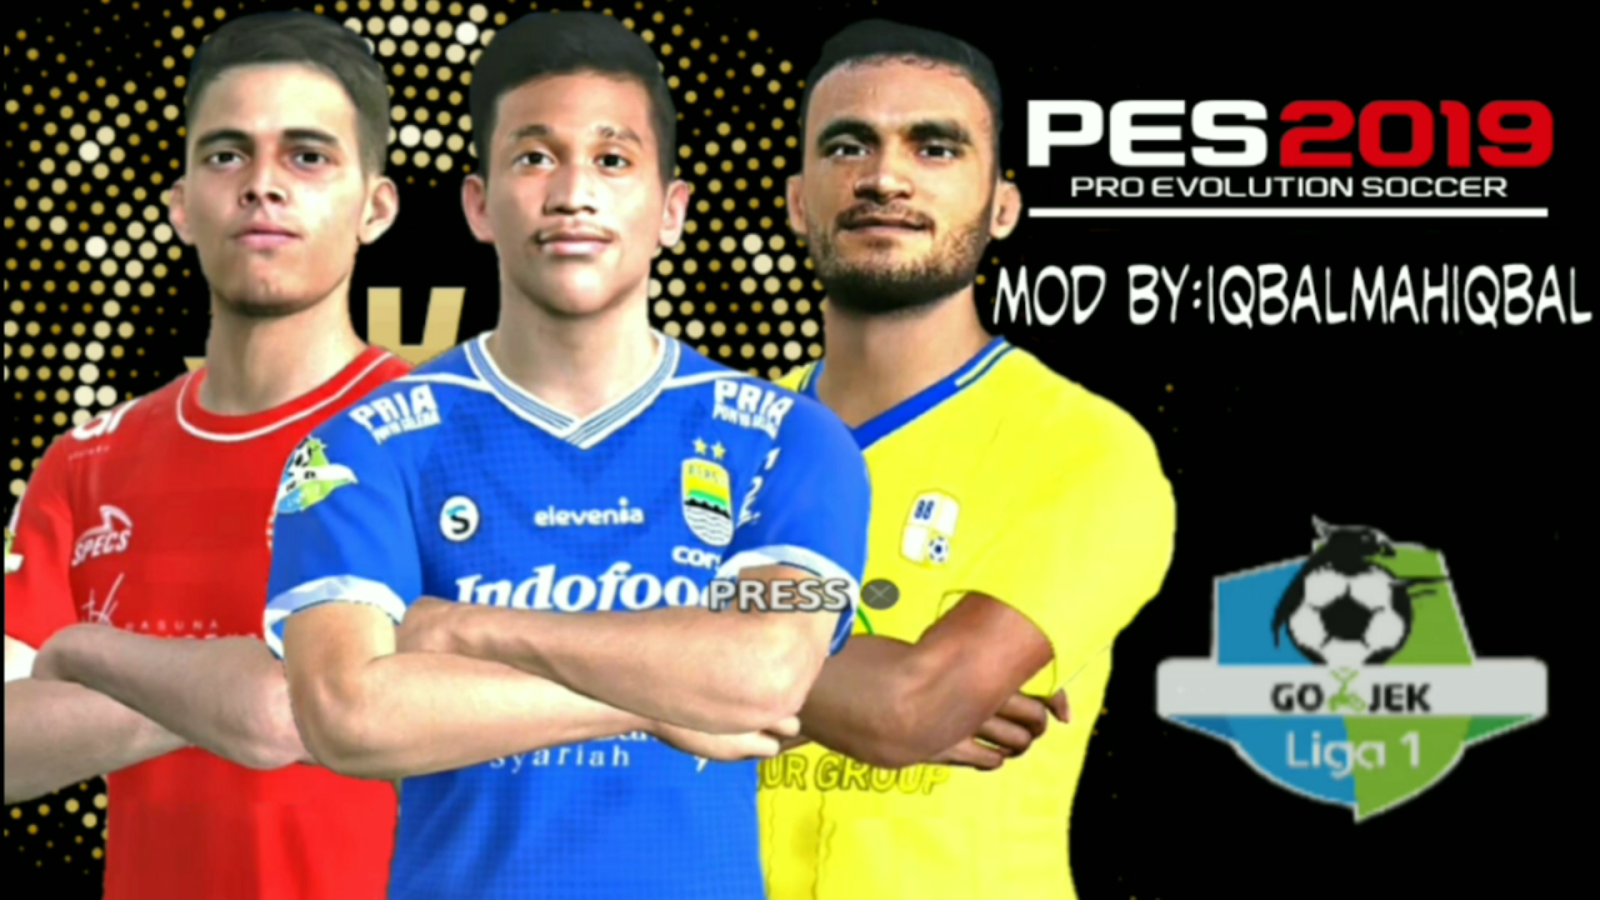 download pes 2019 jogress v3 5 mod gojek liga 1